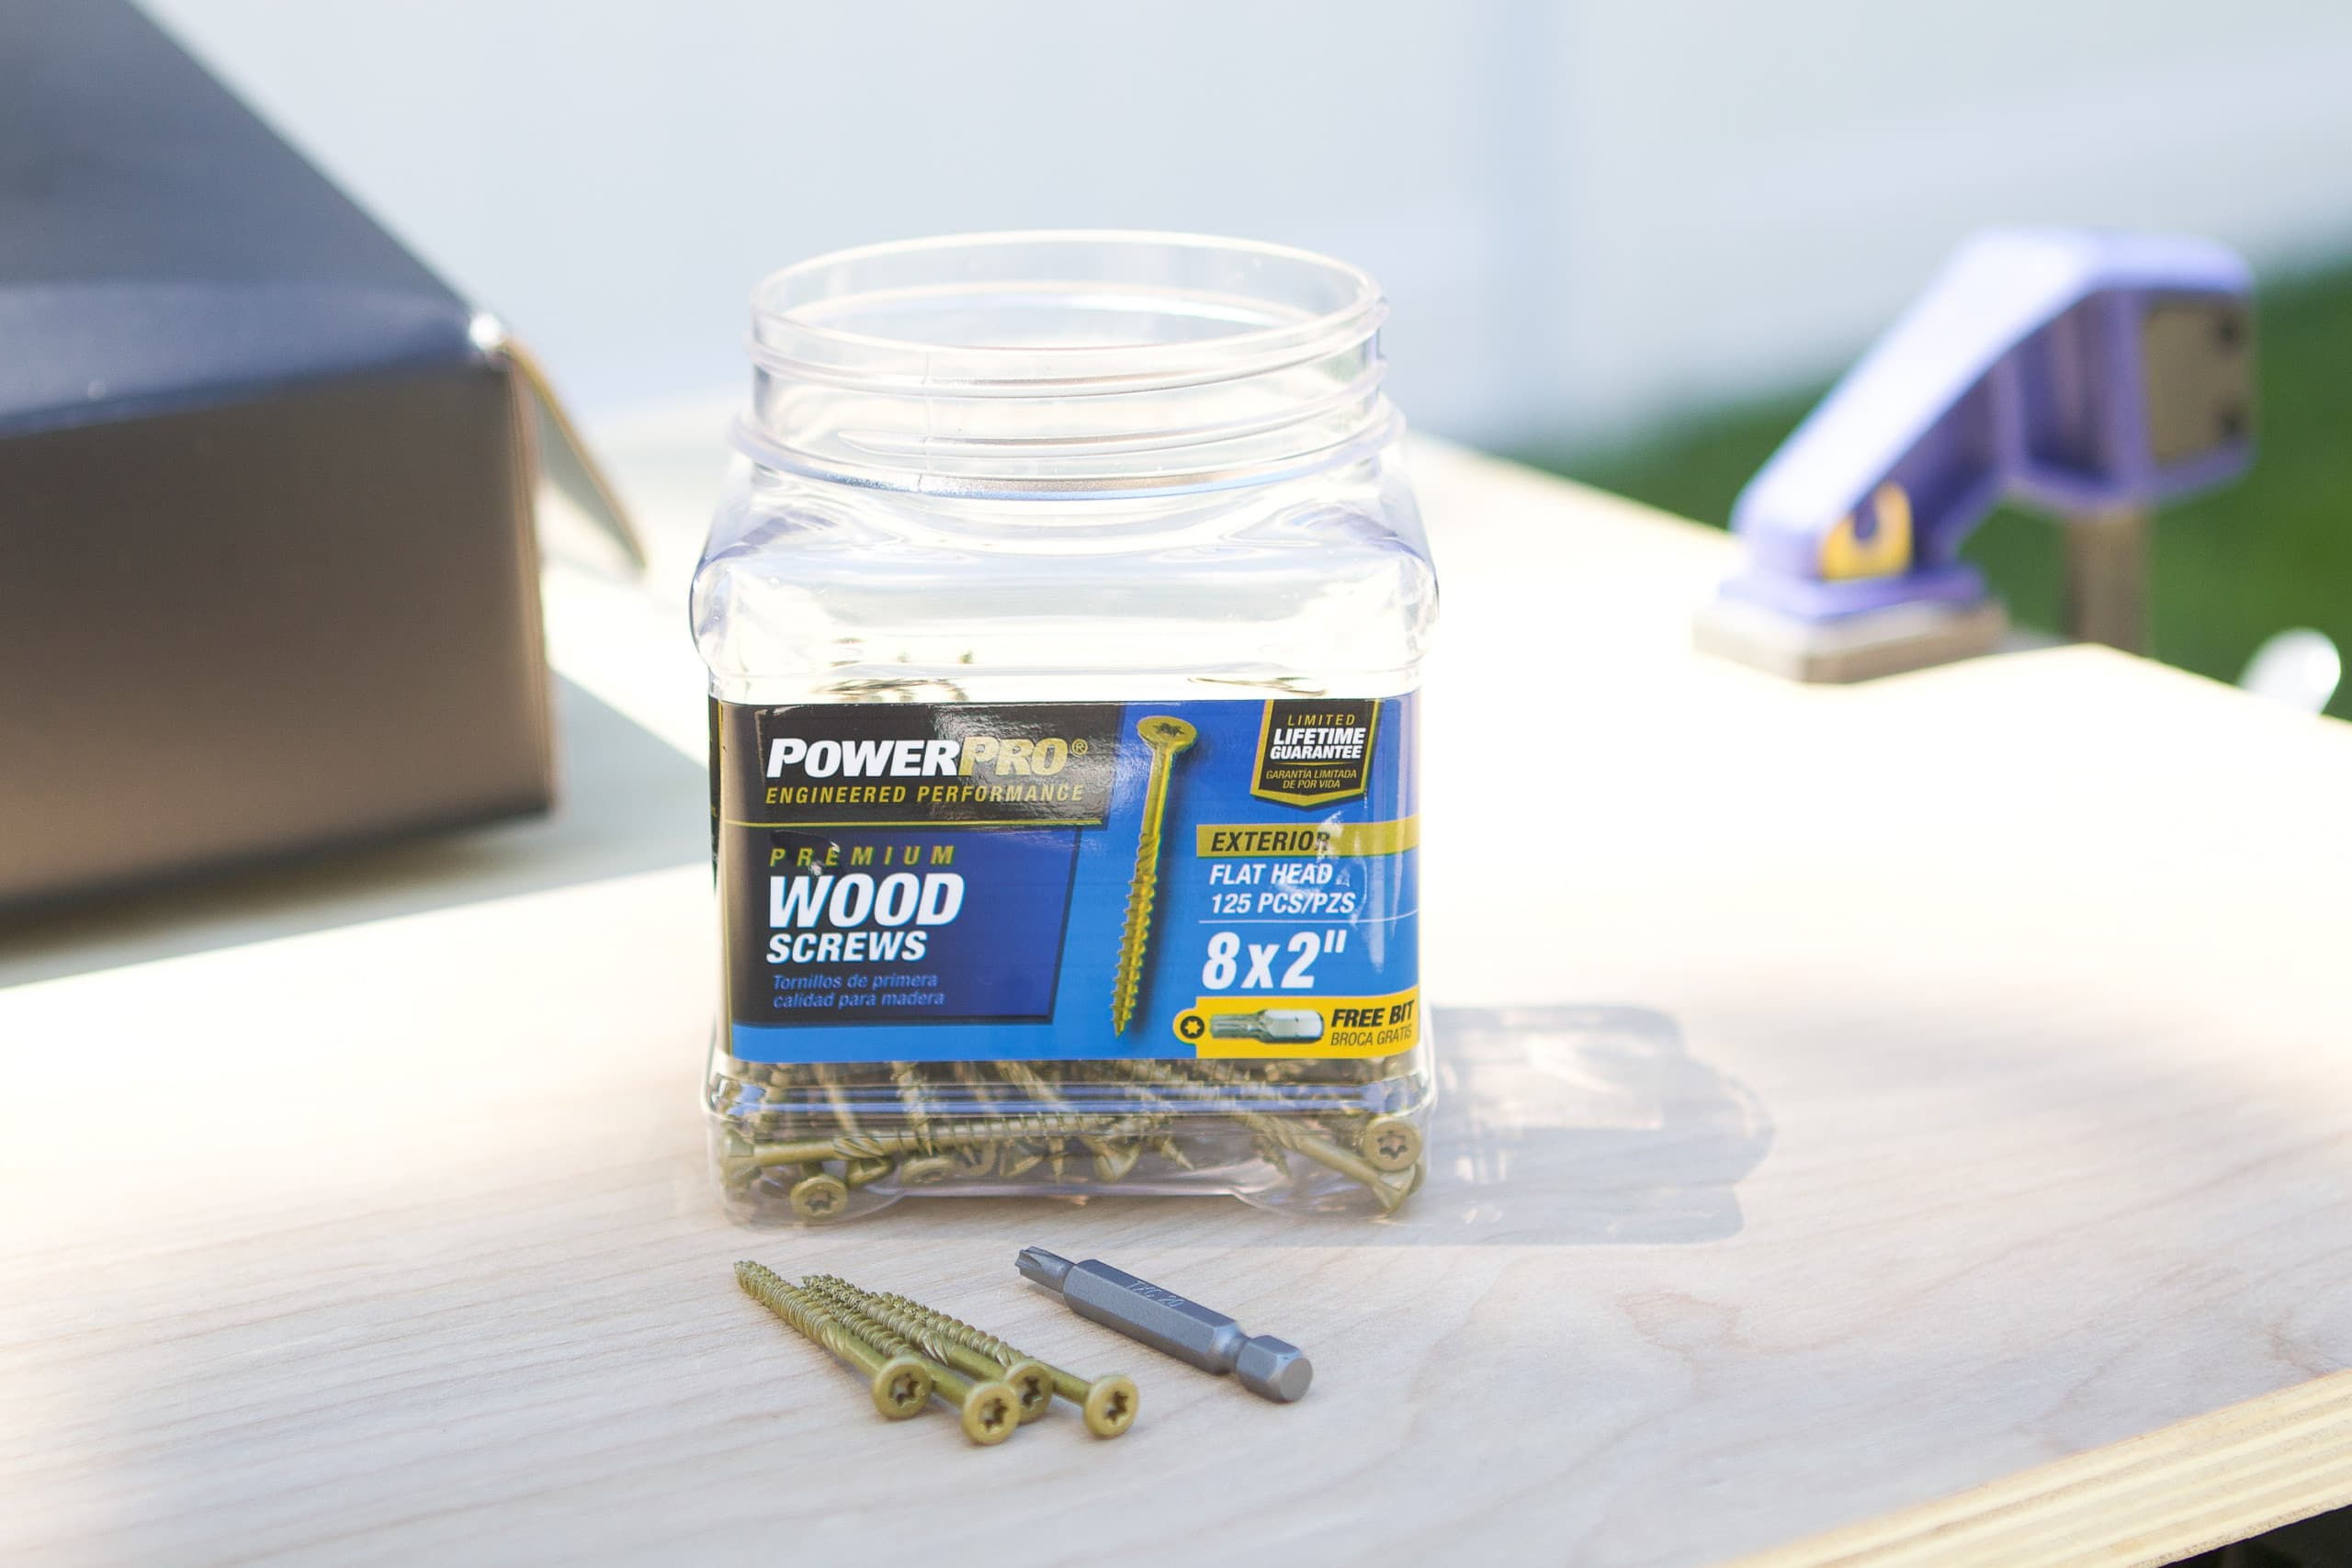 Power pro hardware screws